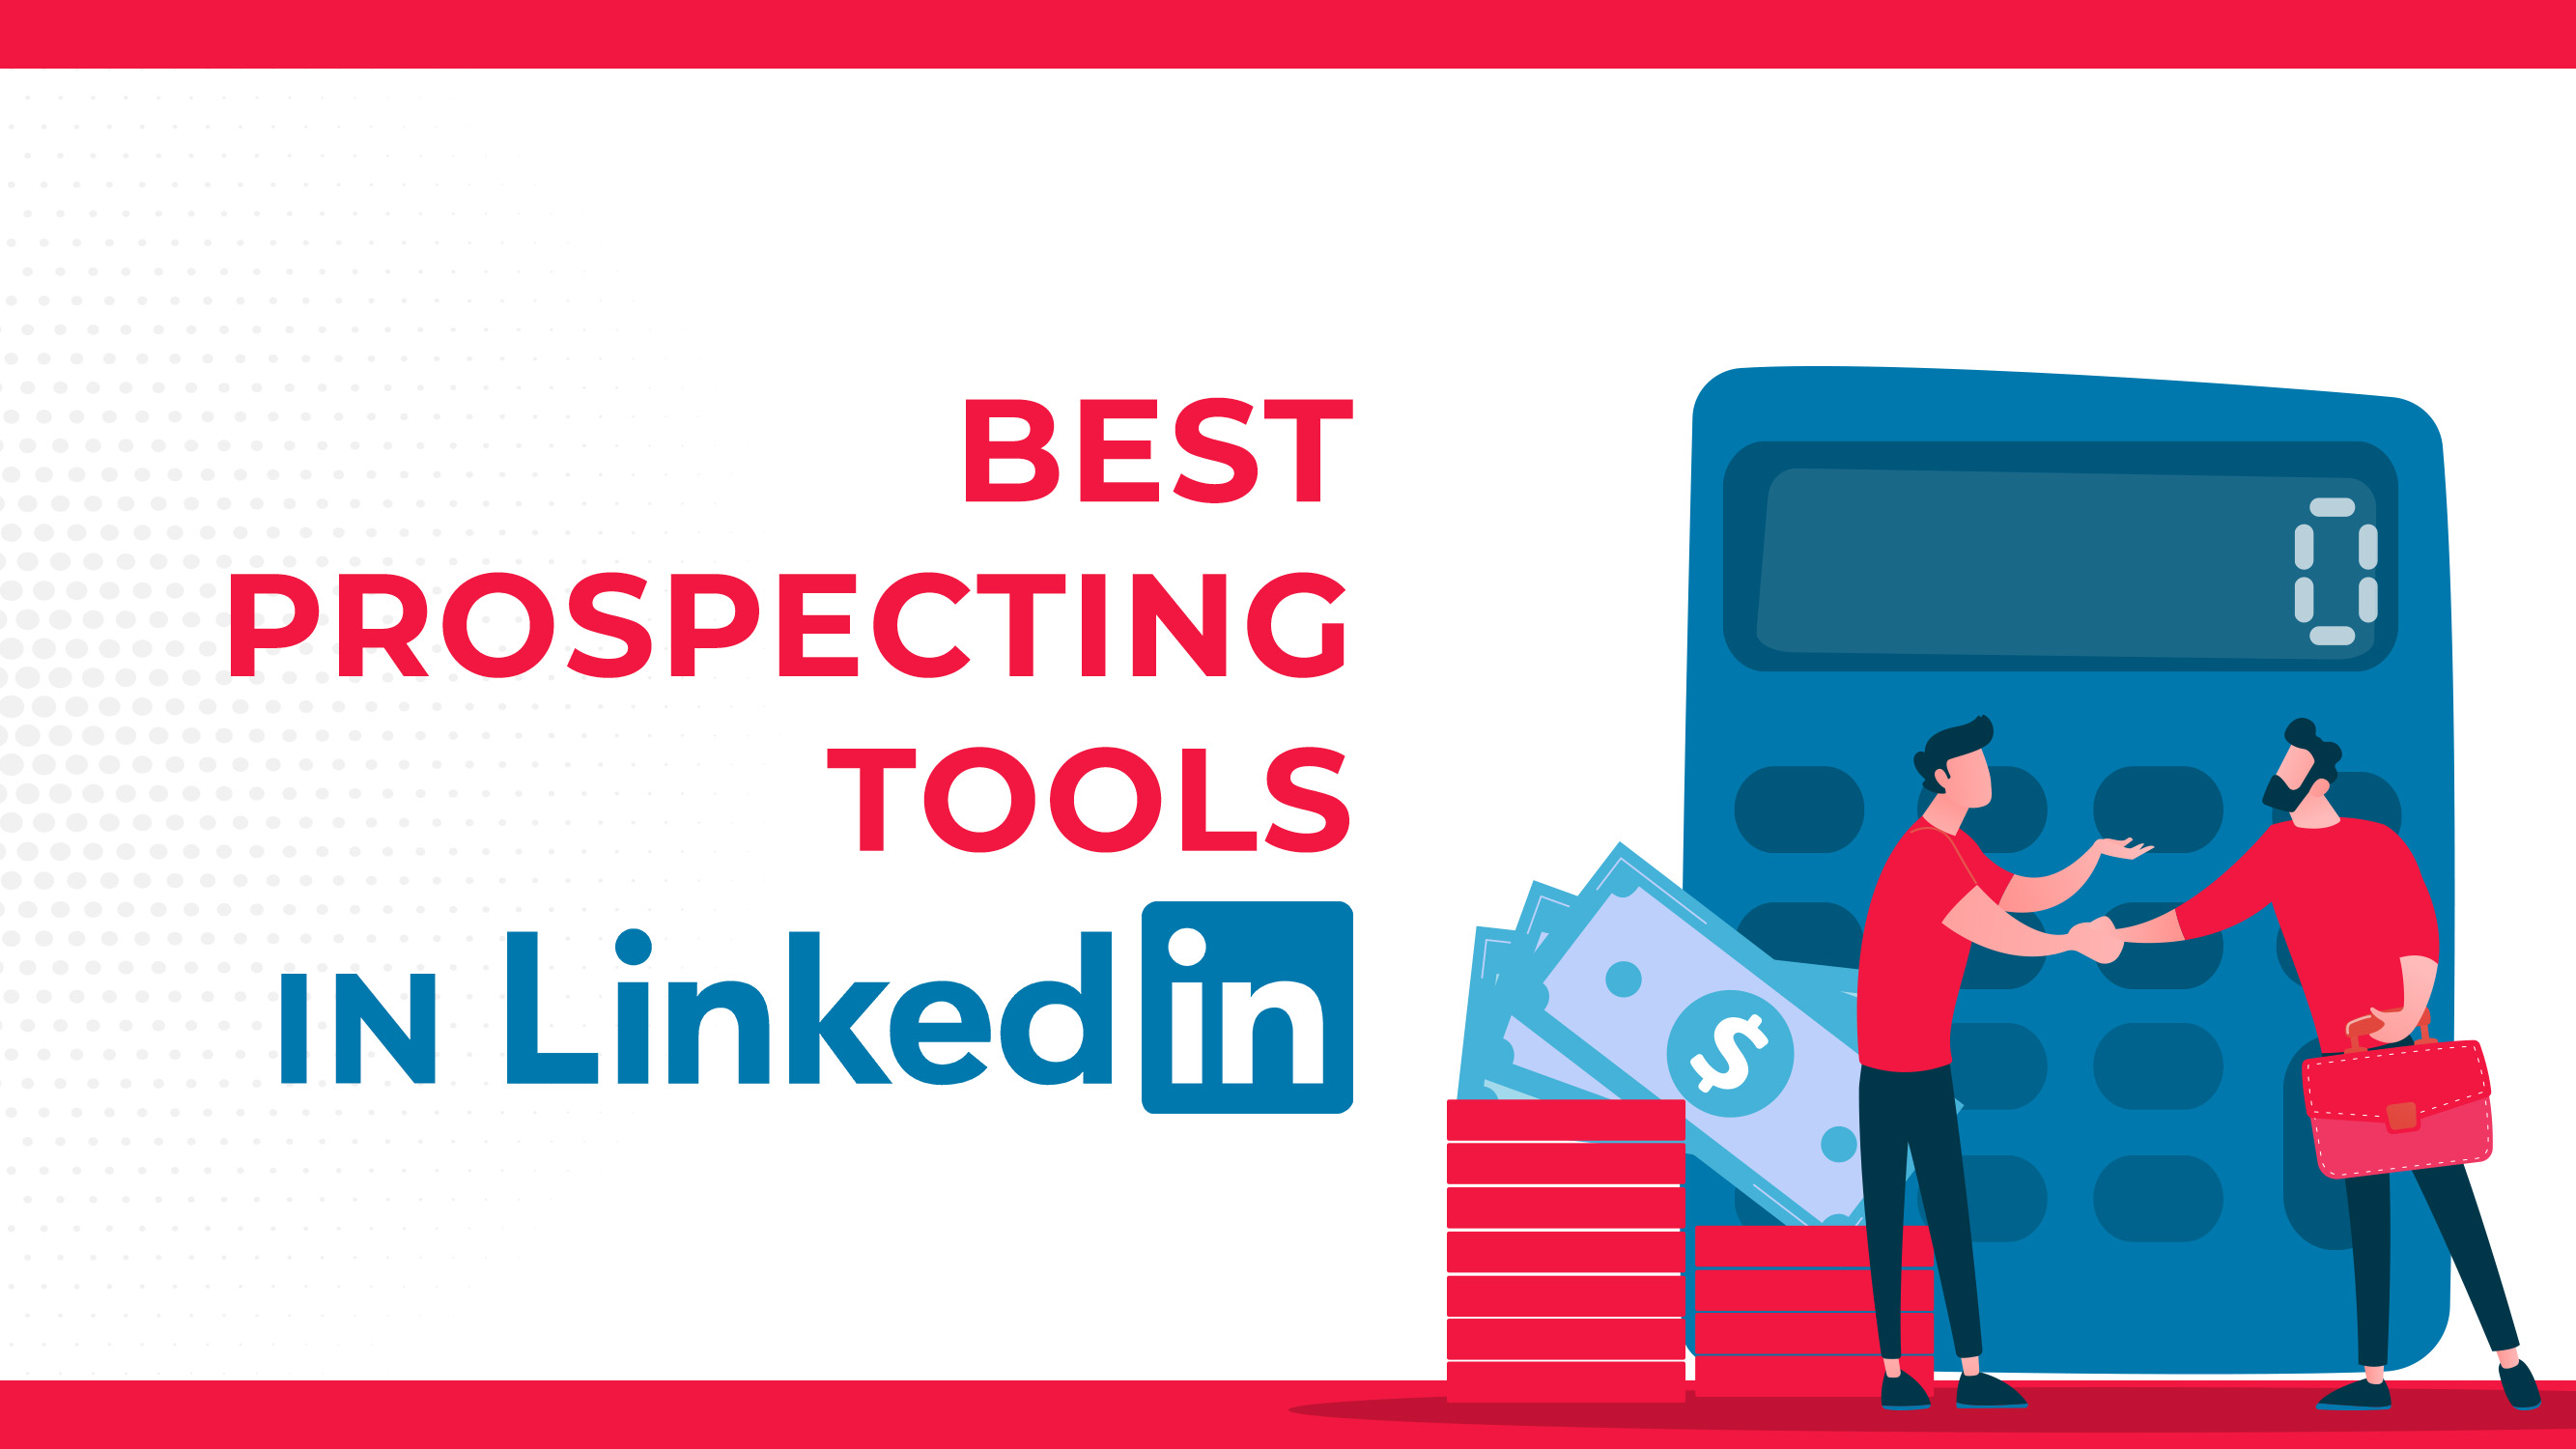 Best Prospecting Tools For LinkedIn